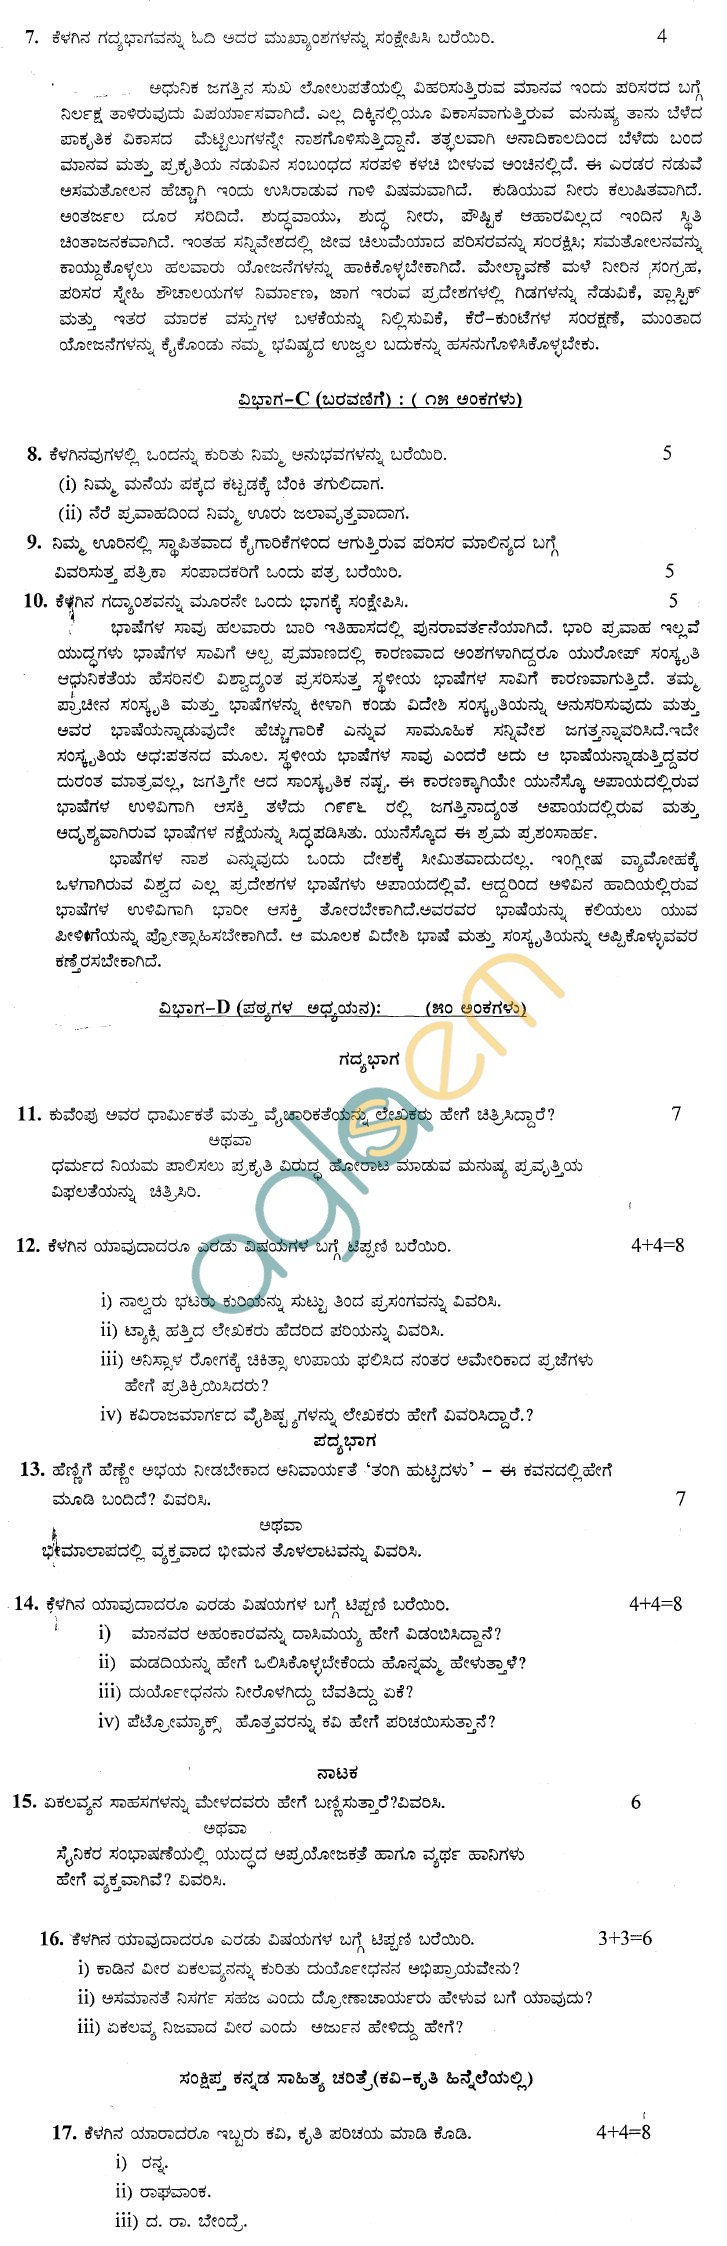 CBSE Board Exam 2013: Sample Question Papers for Kannada